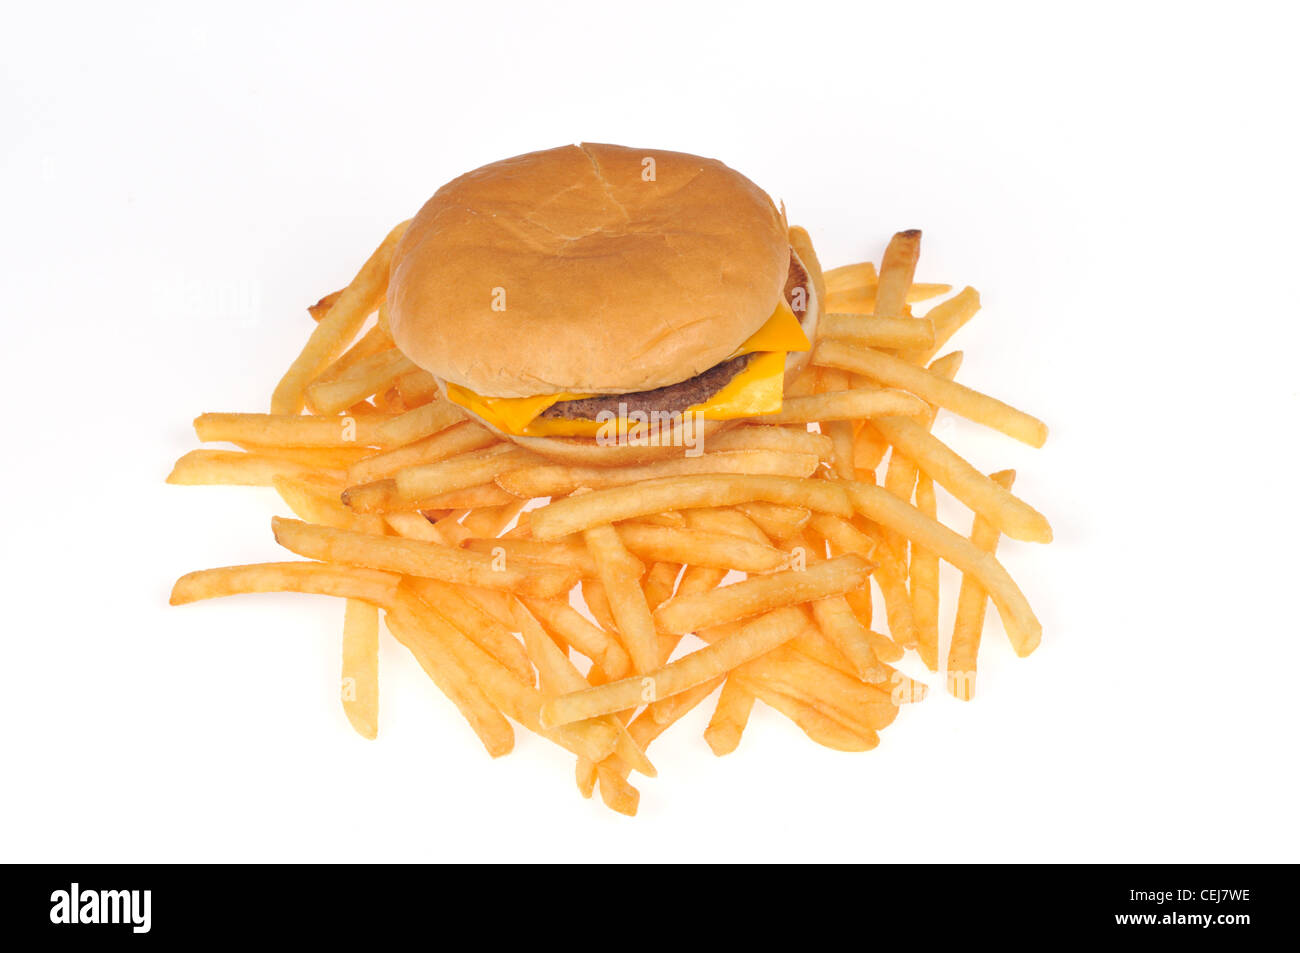 McDonald's double cheeseburger and french fries or chips on white background cutout USA - Stock Image